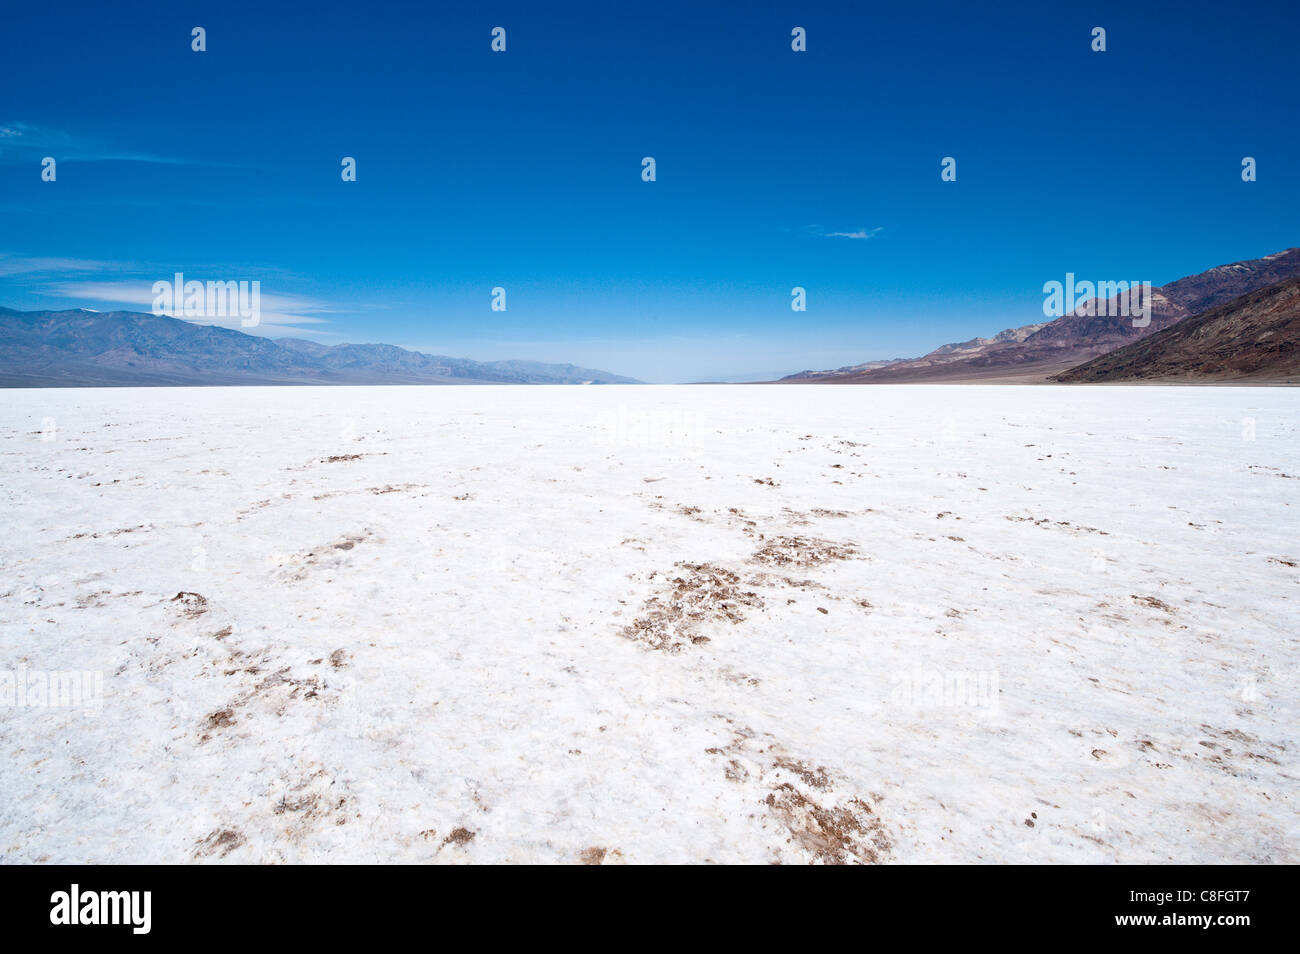 Salt flats near Badwater Basin, Death Valley National Park, California, United States of America - Stock Image